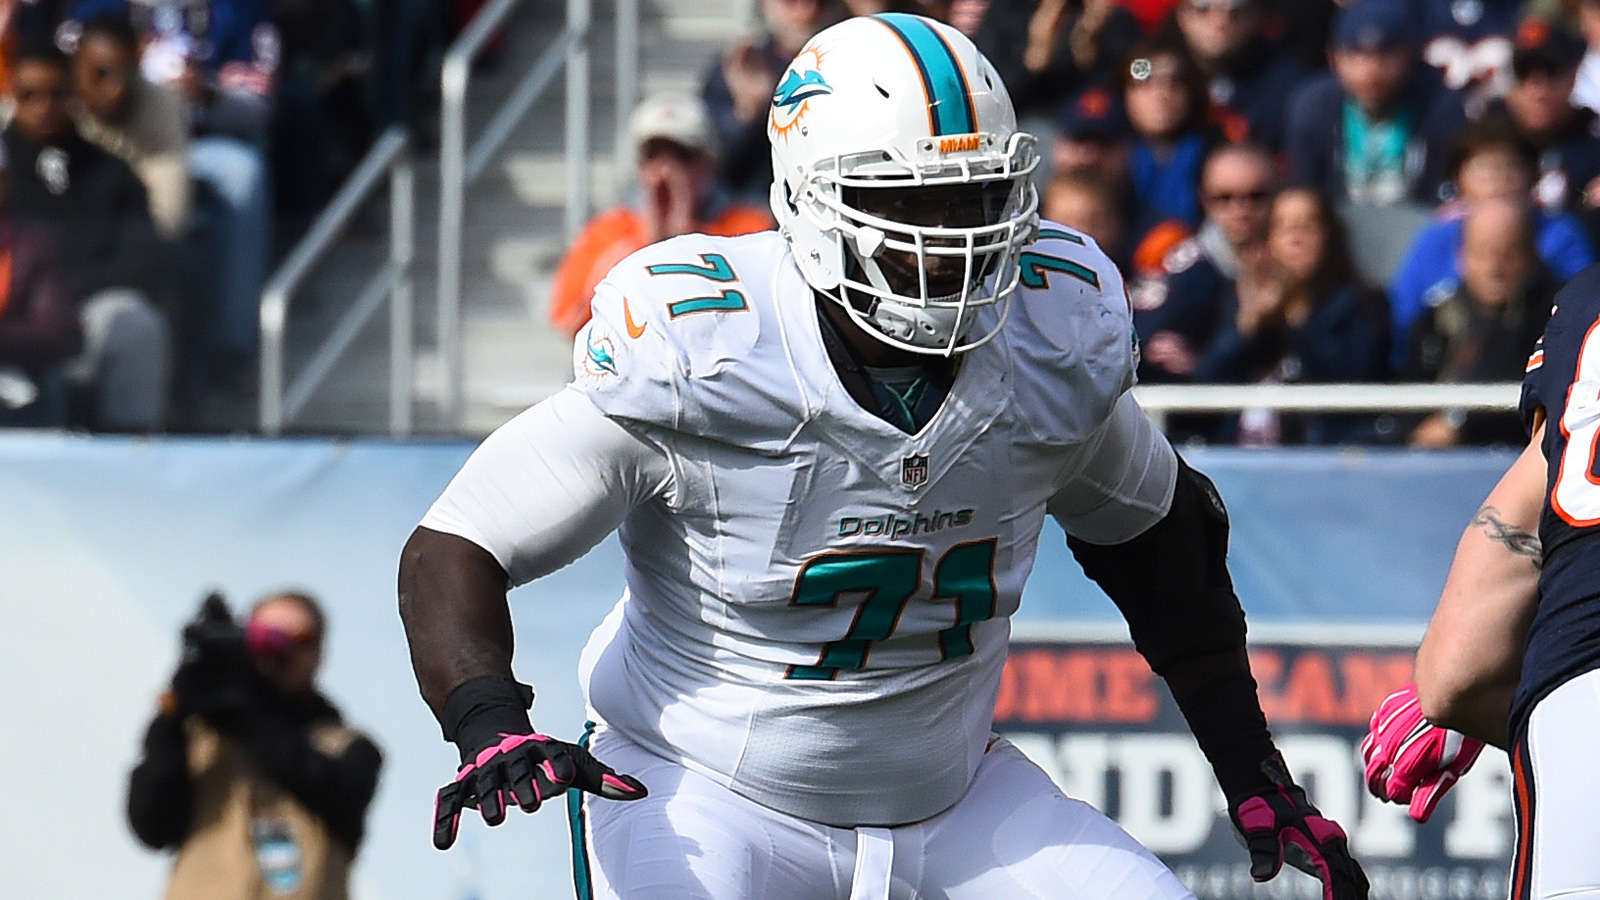 Left tackle Branden Albert among four released by Dolphins